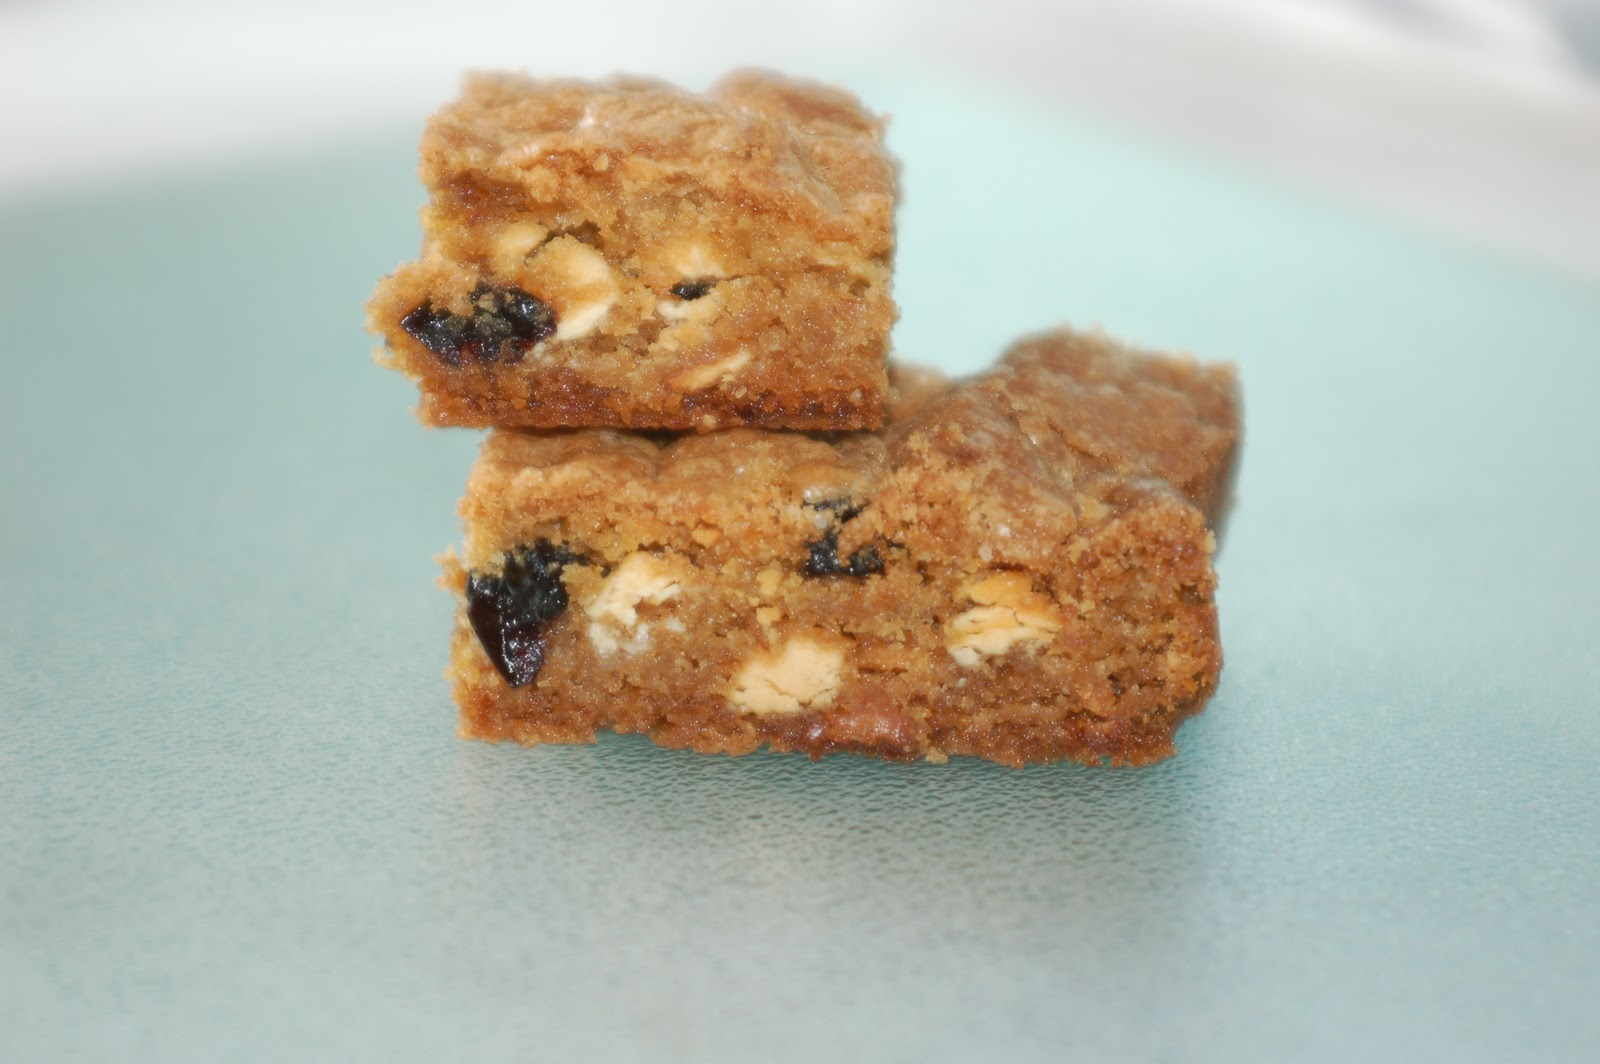 Let's Eat: Blueberry-White Chocolate Chip Blondies